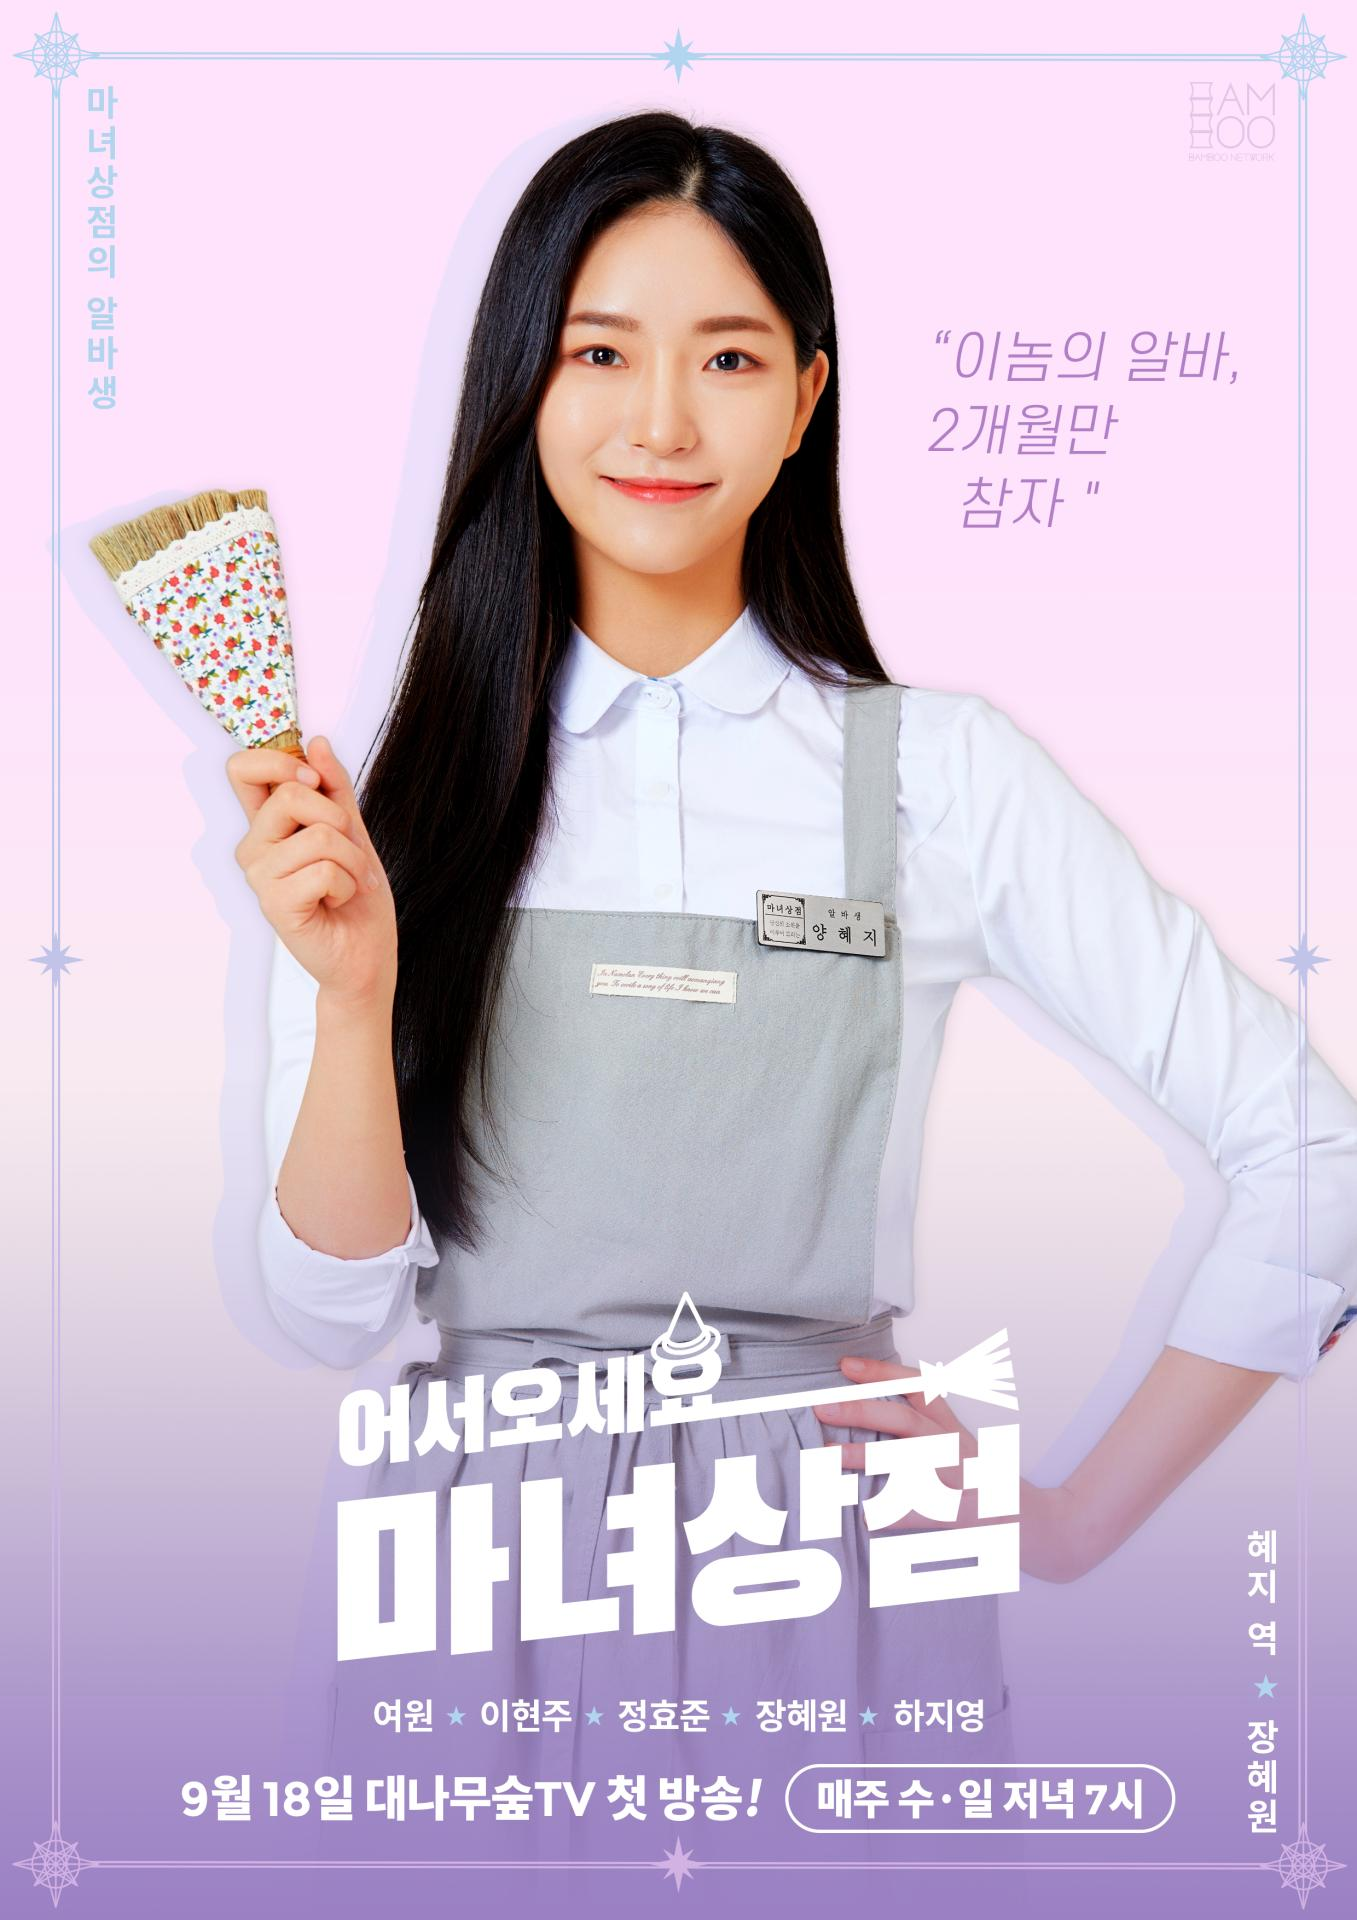 The Witch Store drama, The Witch Store cast, The Witch Store summary, pentagon yeo one, yeo one drama, yeo one the witch store, the witch store korea, lee hyunjoo drama, the witch store poster